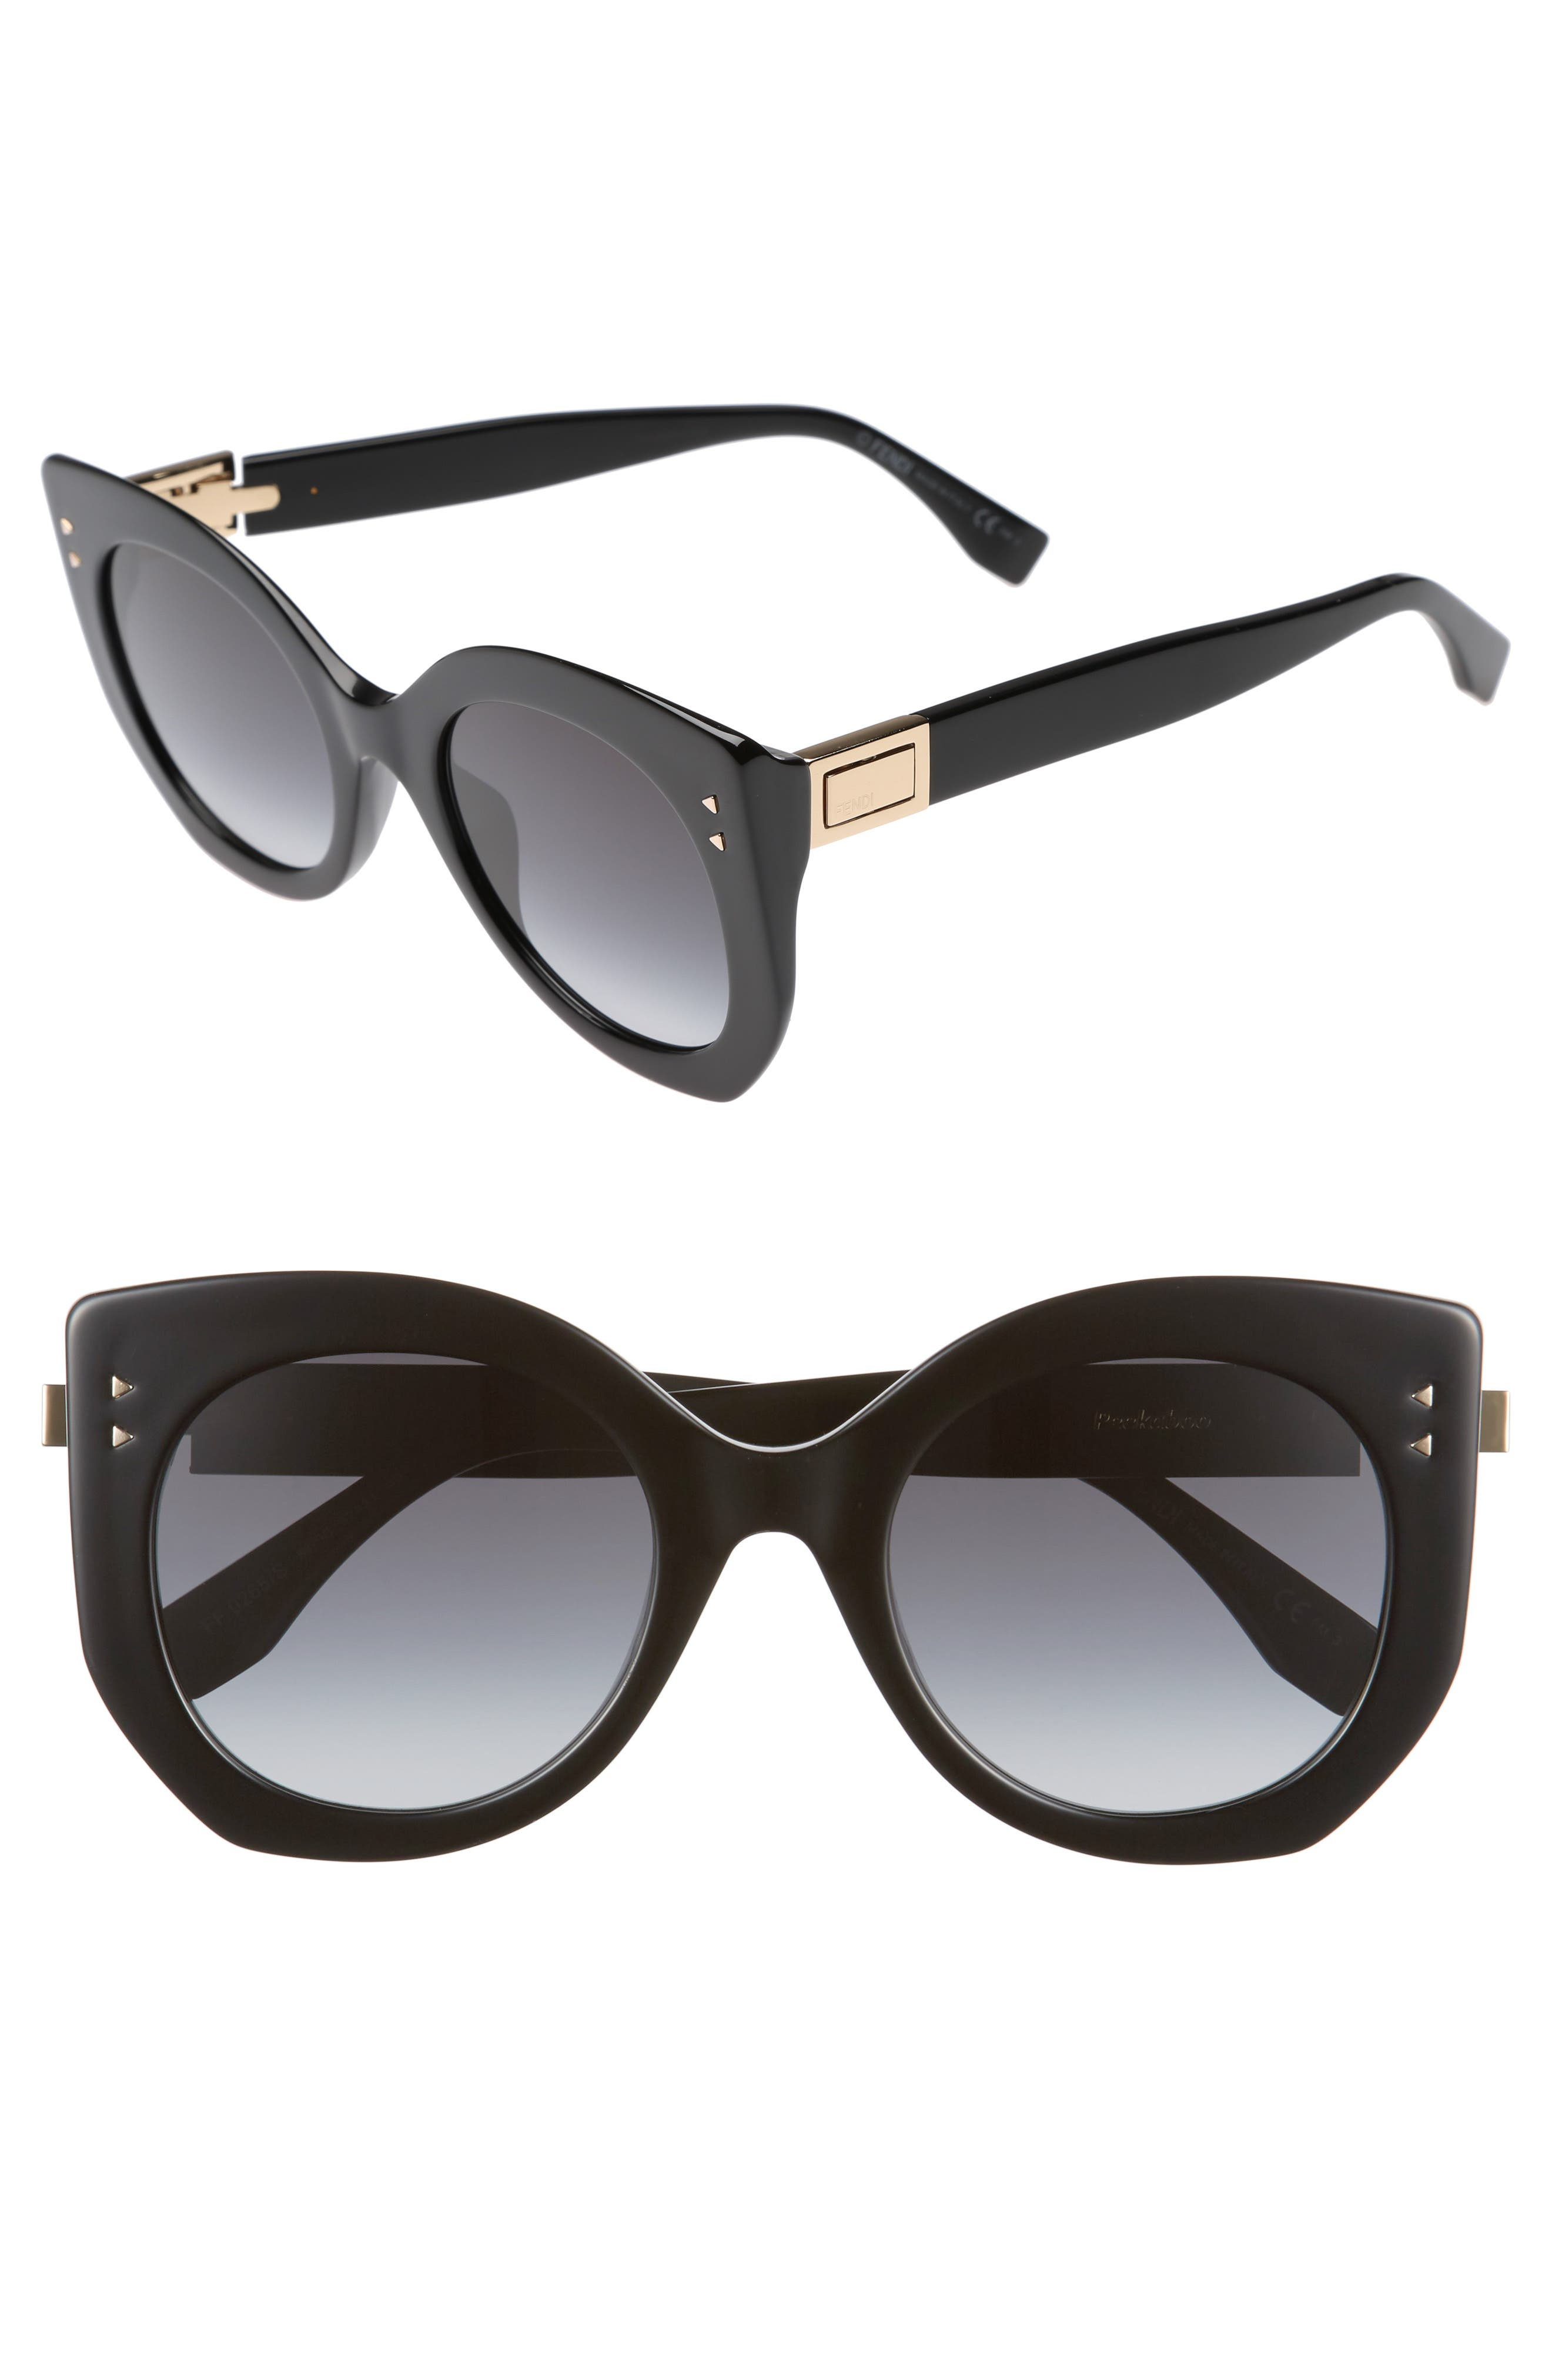 52mm Butterfly Sunglasses,                         Main,                         color, Black